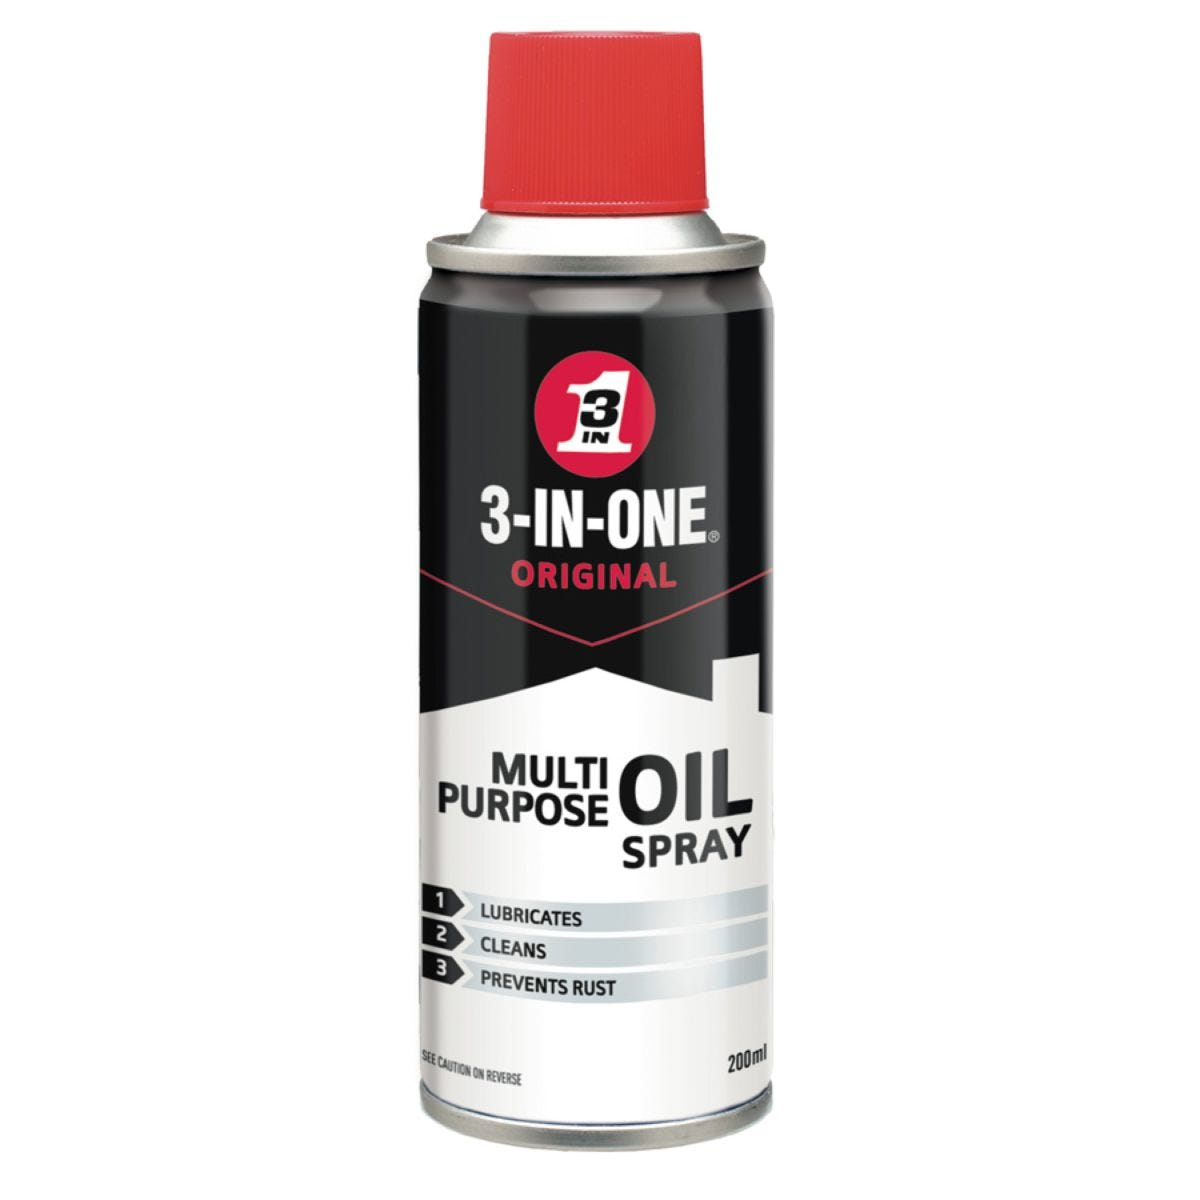 3-IN-ONE Multi Purpose Oil Aerosol 200ml